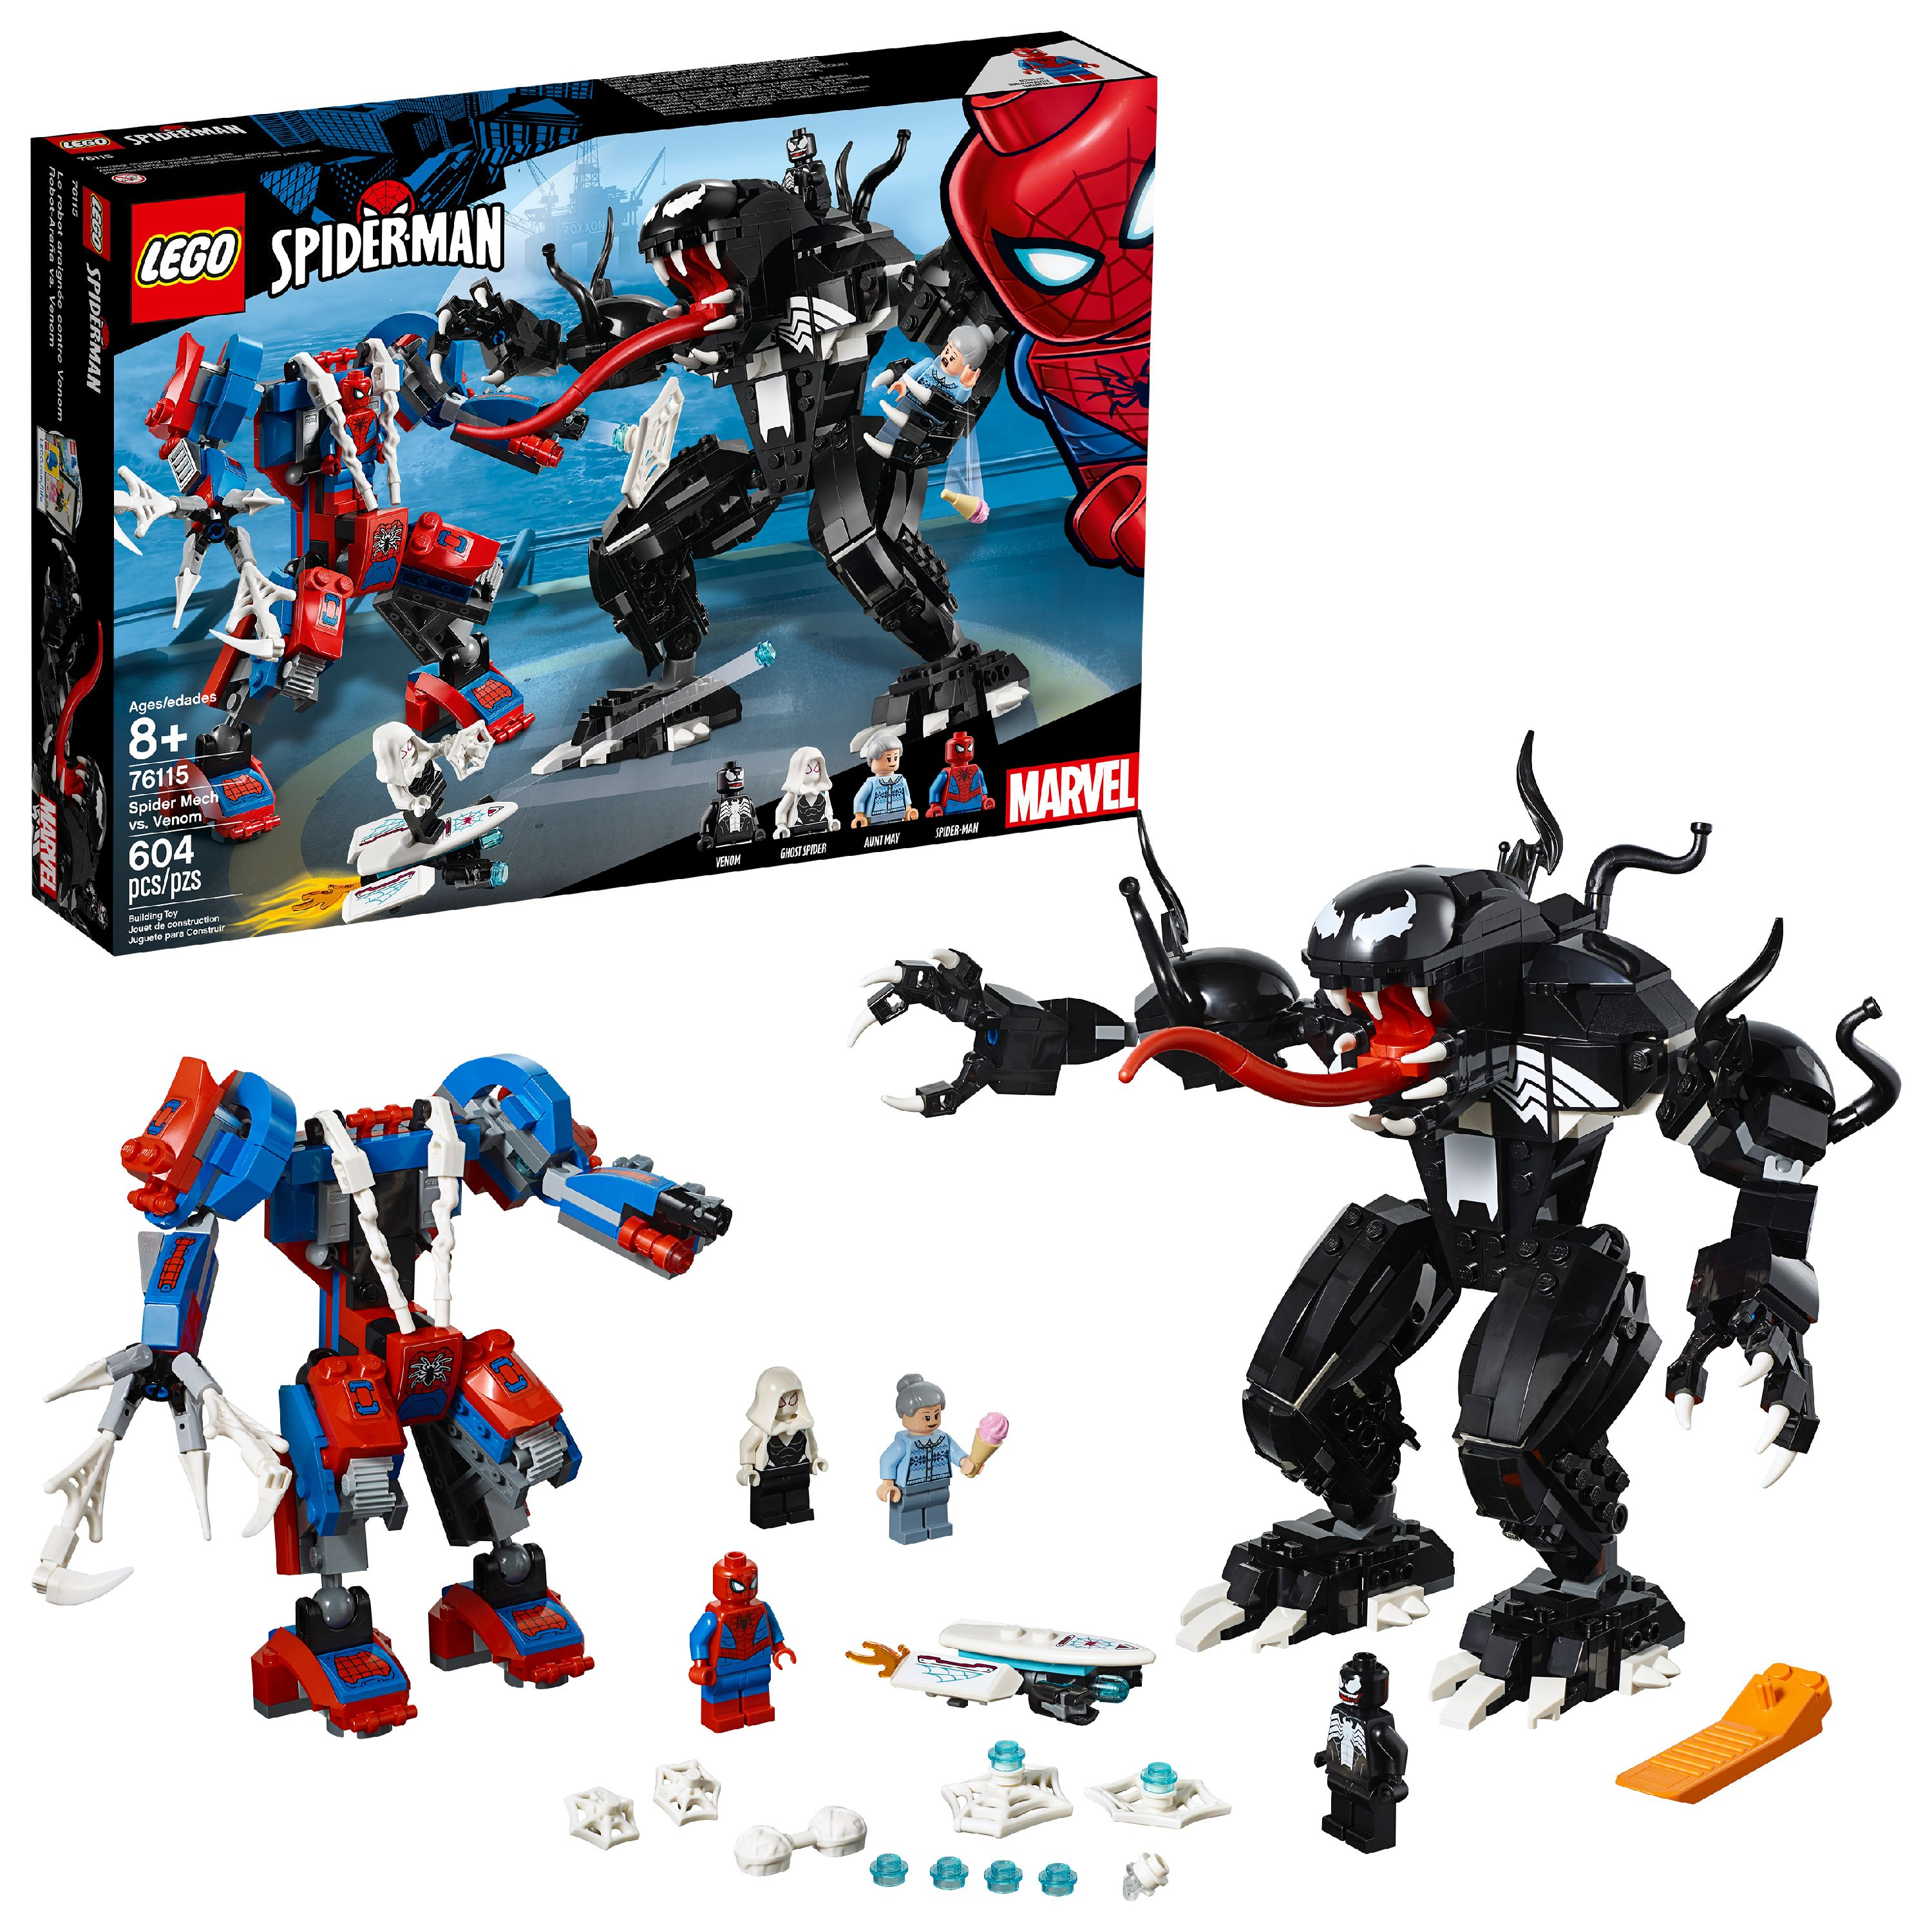 LEGO Super Heroes Marvel Spider Mech vs. Venom 76115